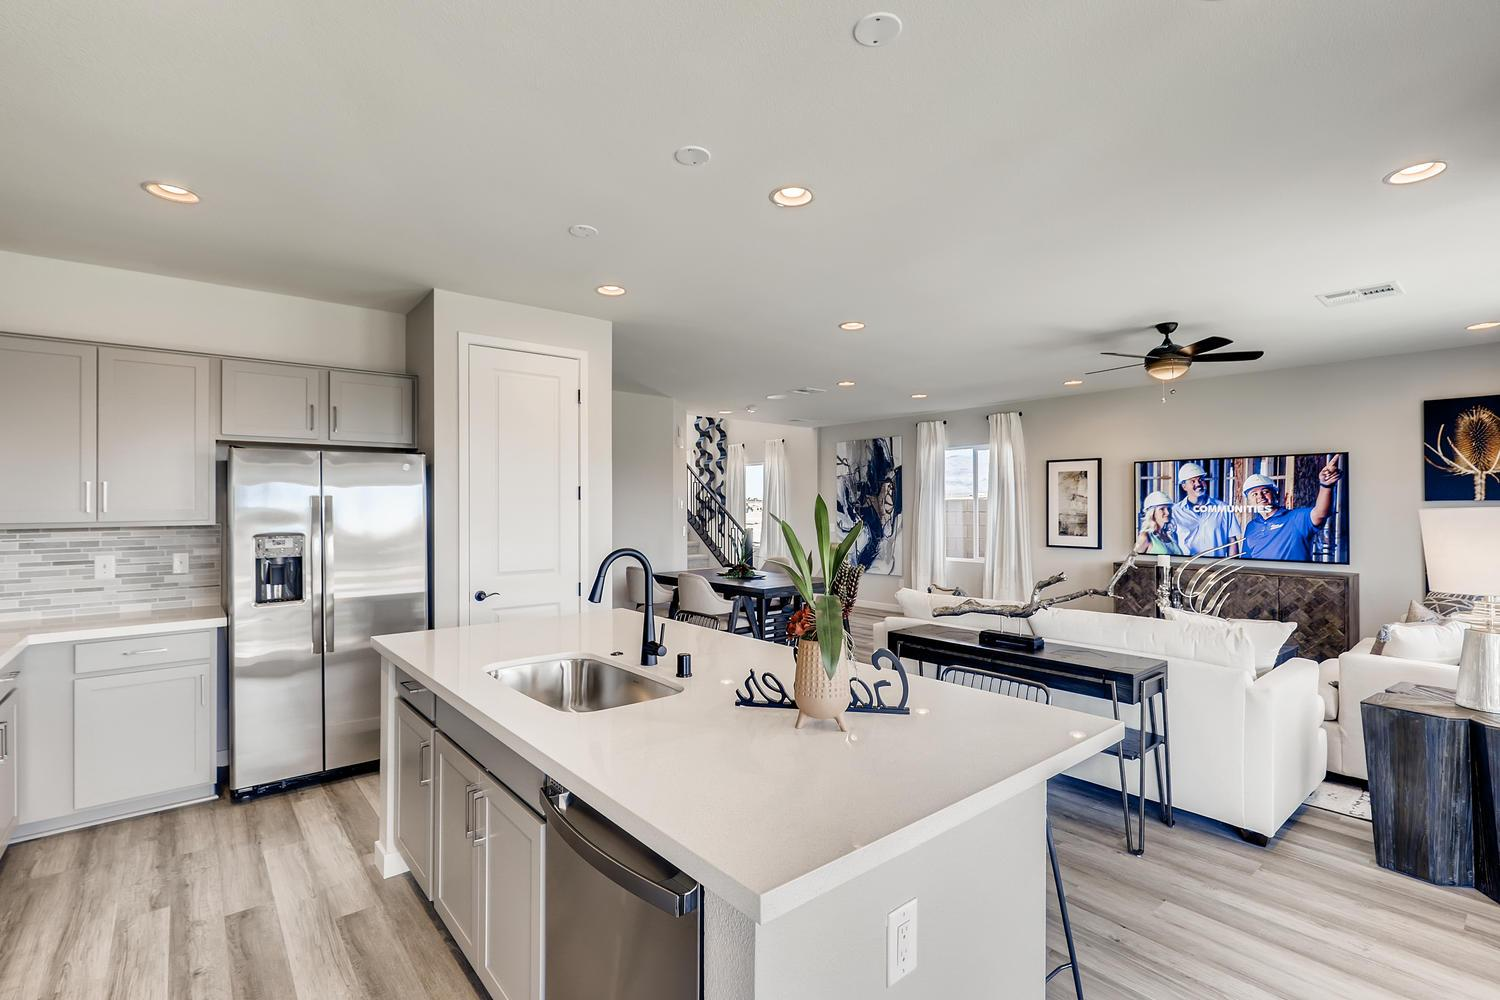 Kitchen featured in the 30 - Magnolia By Taylor Morrison in Las Vegas, NV